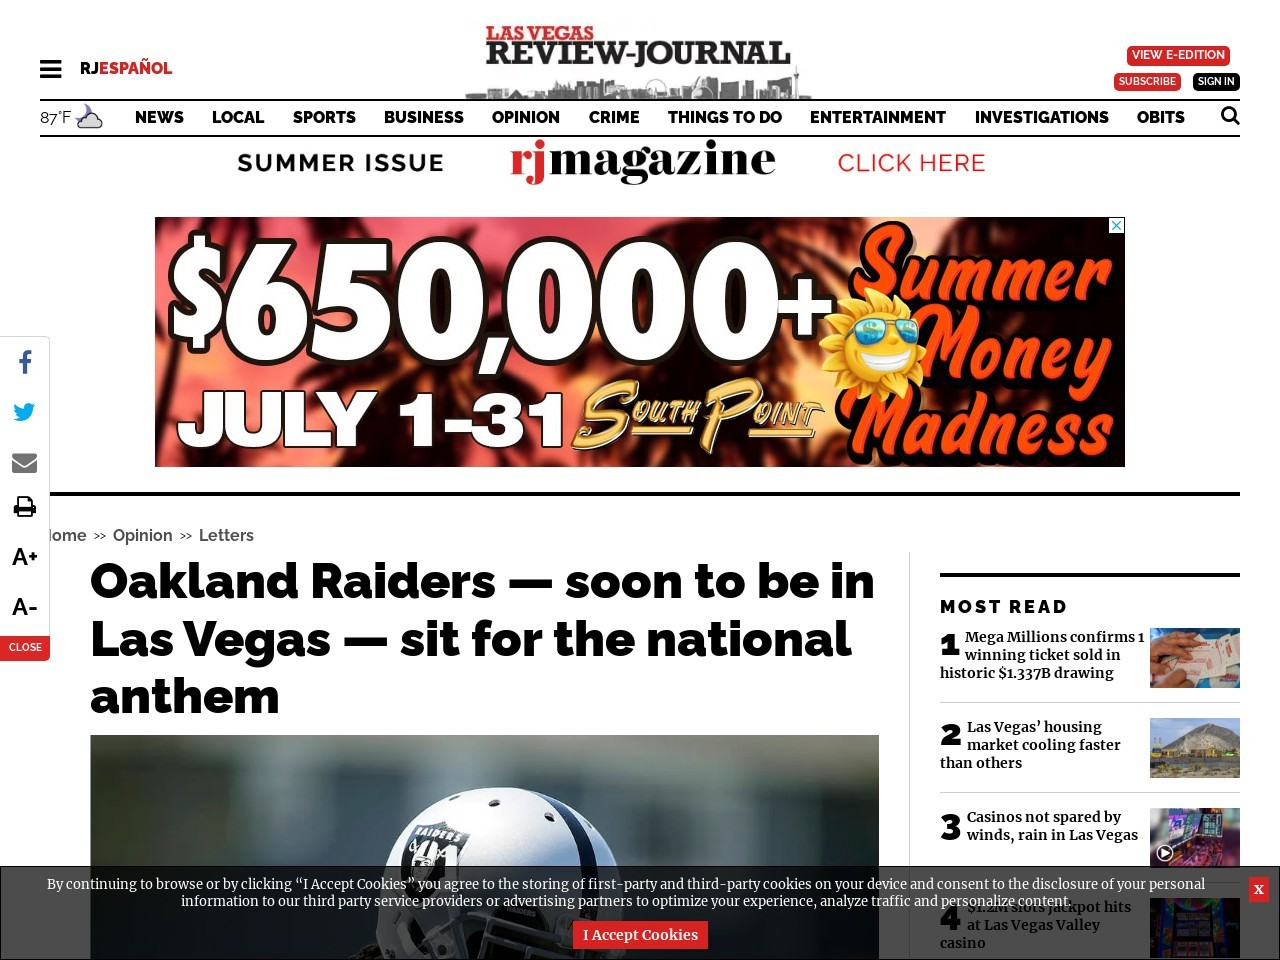 Oakland Raiders — soon to be in Las Vegas — sit for the national anthem